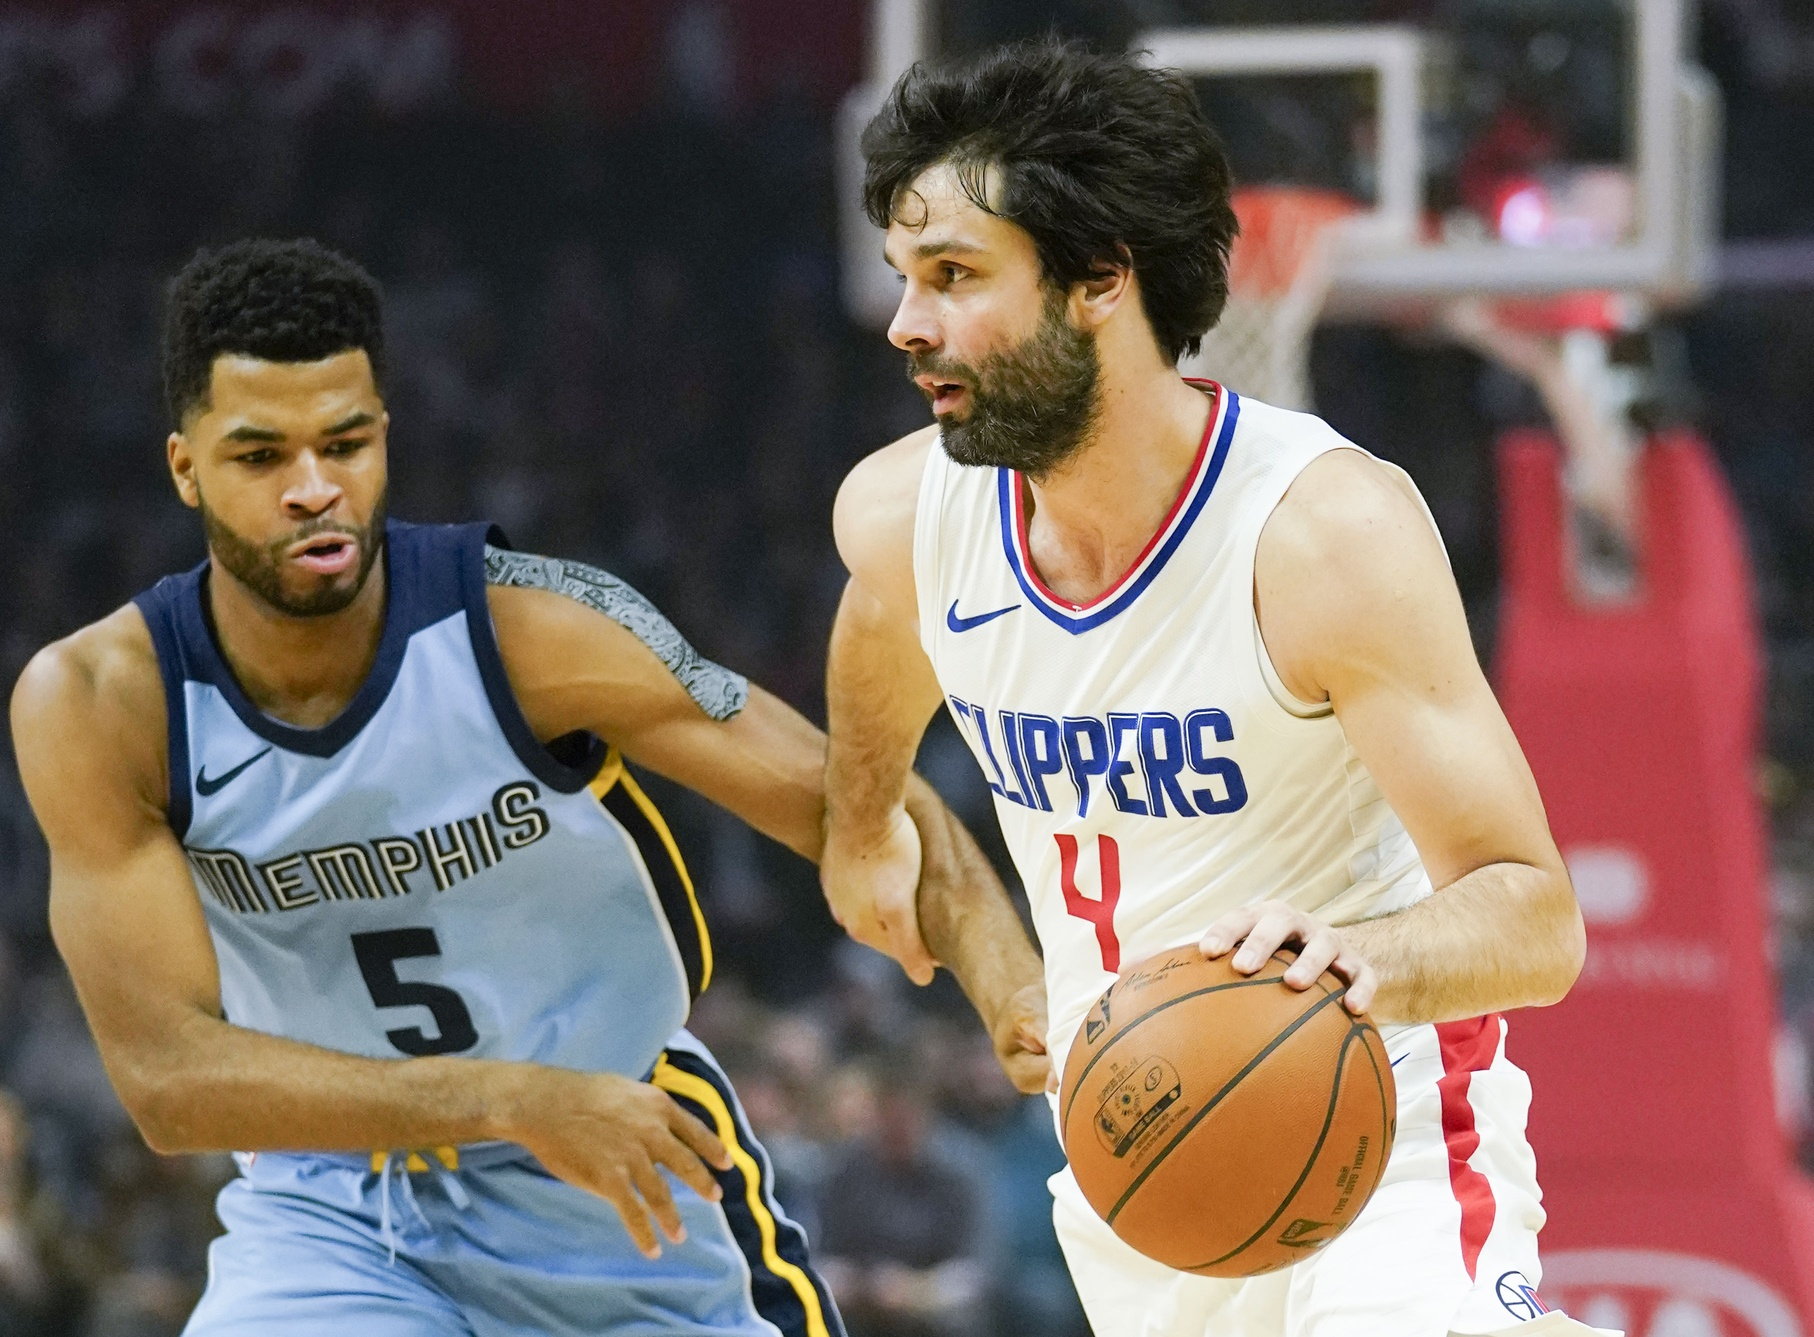 Milos Teodosic to get reevaluated today